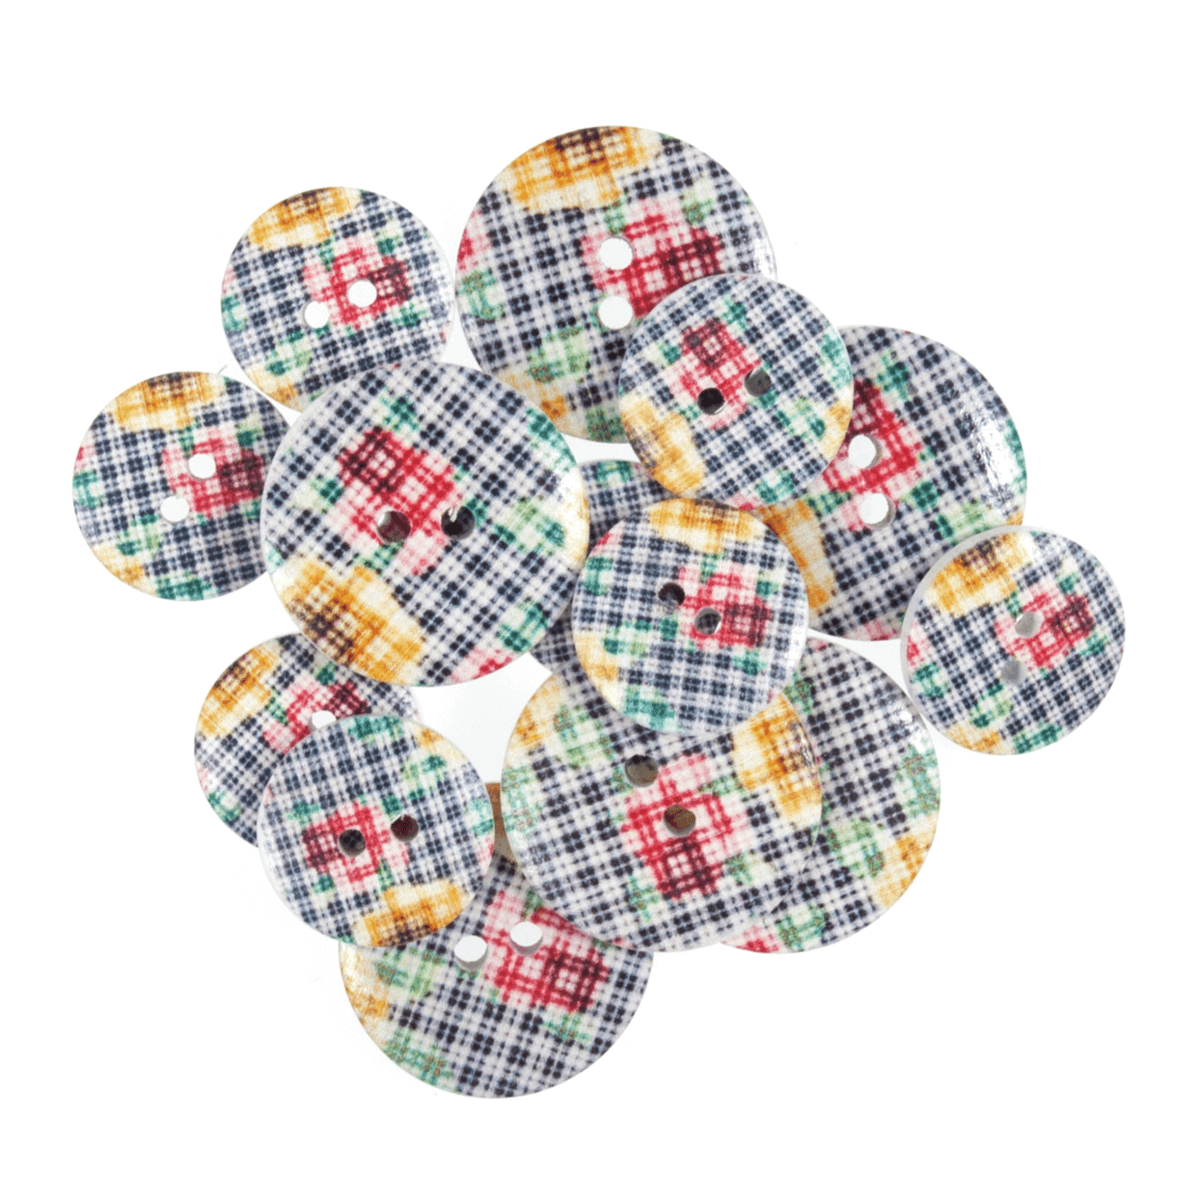 15 x Assorted Gingham Flowers Wooden Craft Buttons 18mm - 25mm